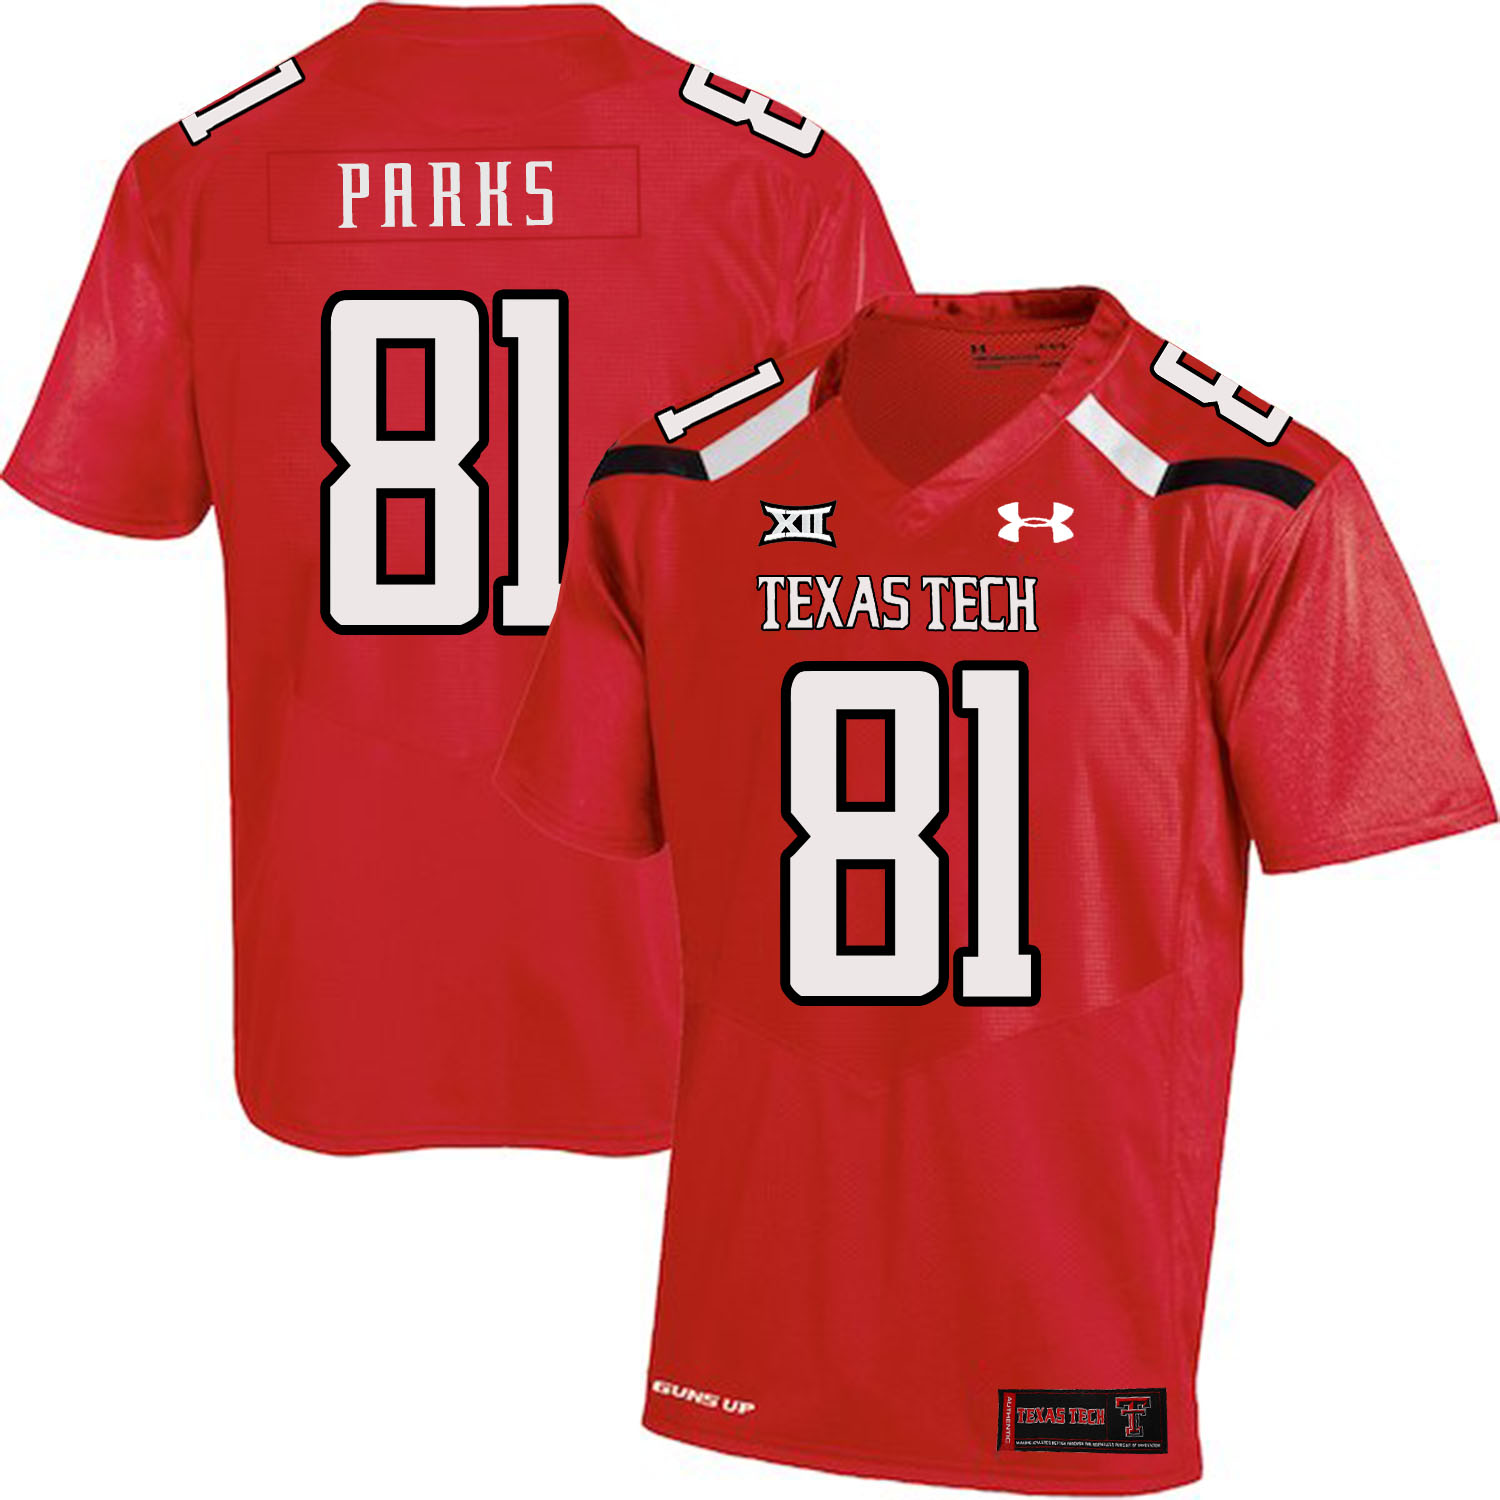 Texas Tech Red Raiders 81 Dave Parks Red College Football Jersey